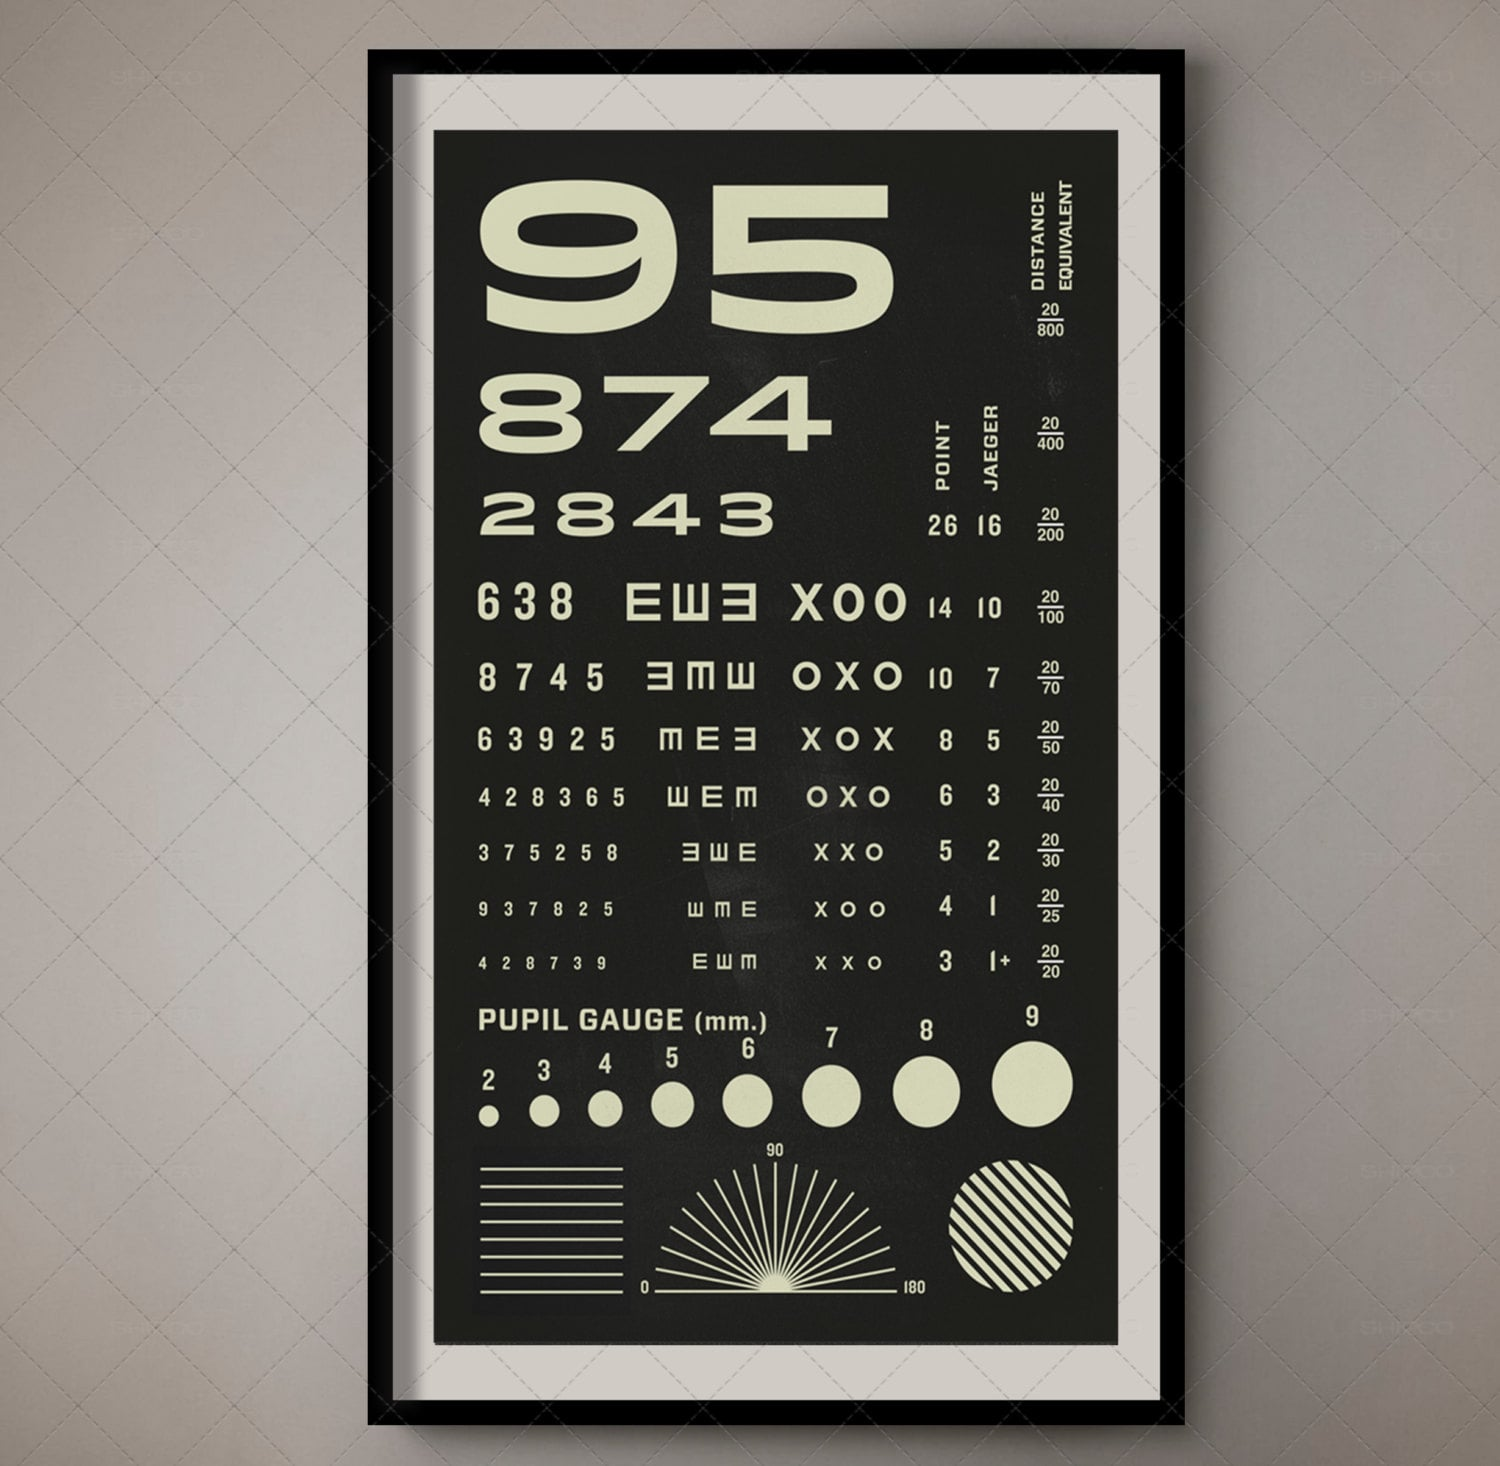 Rosenbaum Eye Chart Pocket Vision Test for Optometrists / Vintage Vision  Exam Ultimate Near Vision Screener for Ophthalmology Snellen Chart